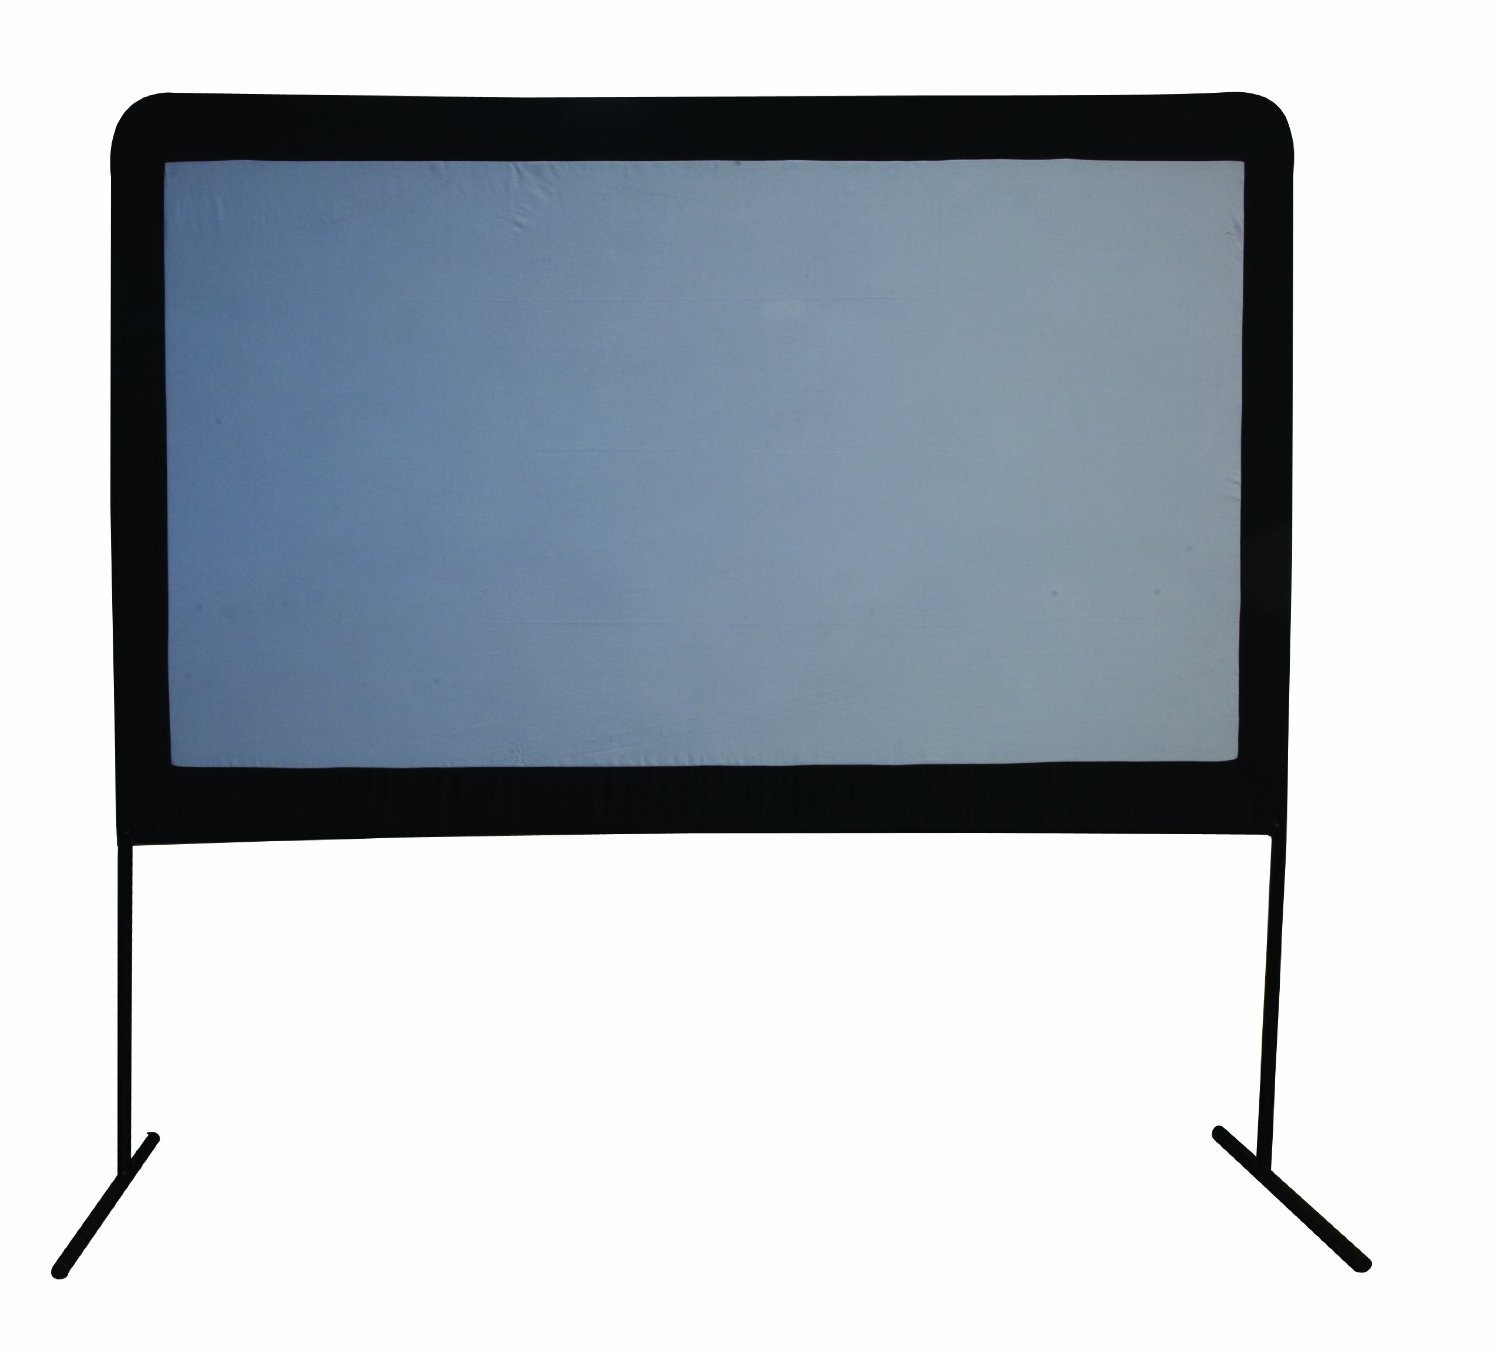 projection screens best buy Free shipping buy best choice products 119 pull down manual projector screen at walmartcom.